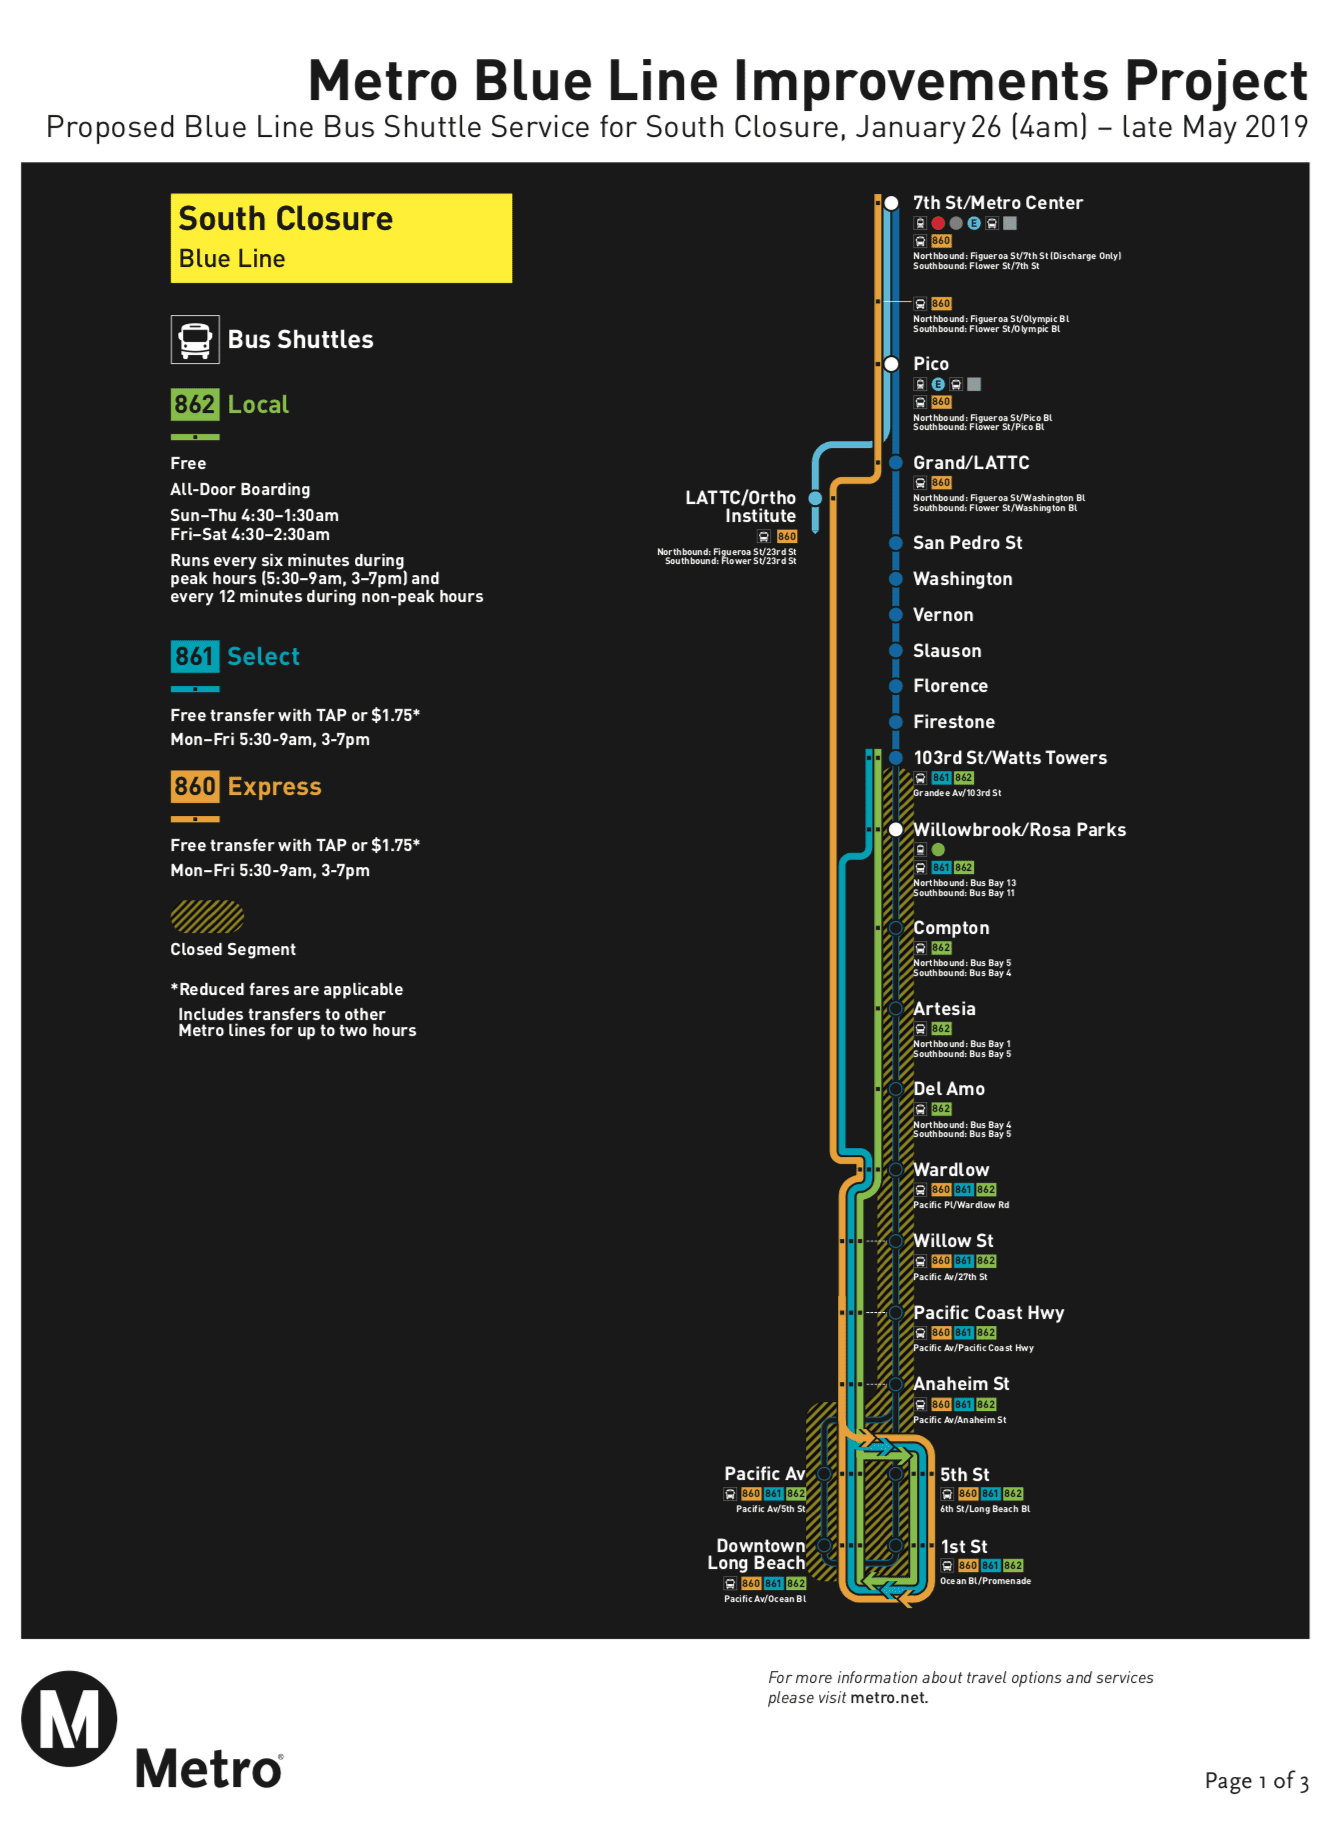 Blue Line south closure to begin Saturday, Jan  26 - The Source